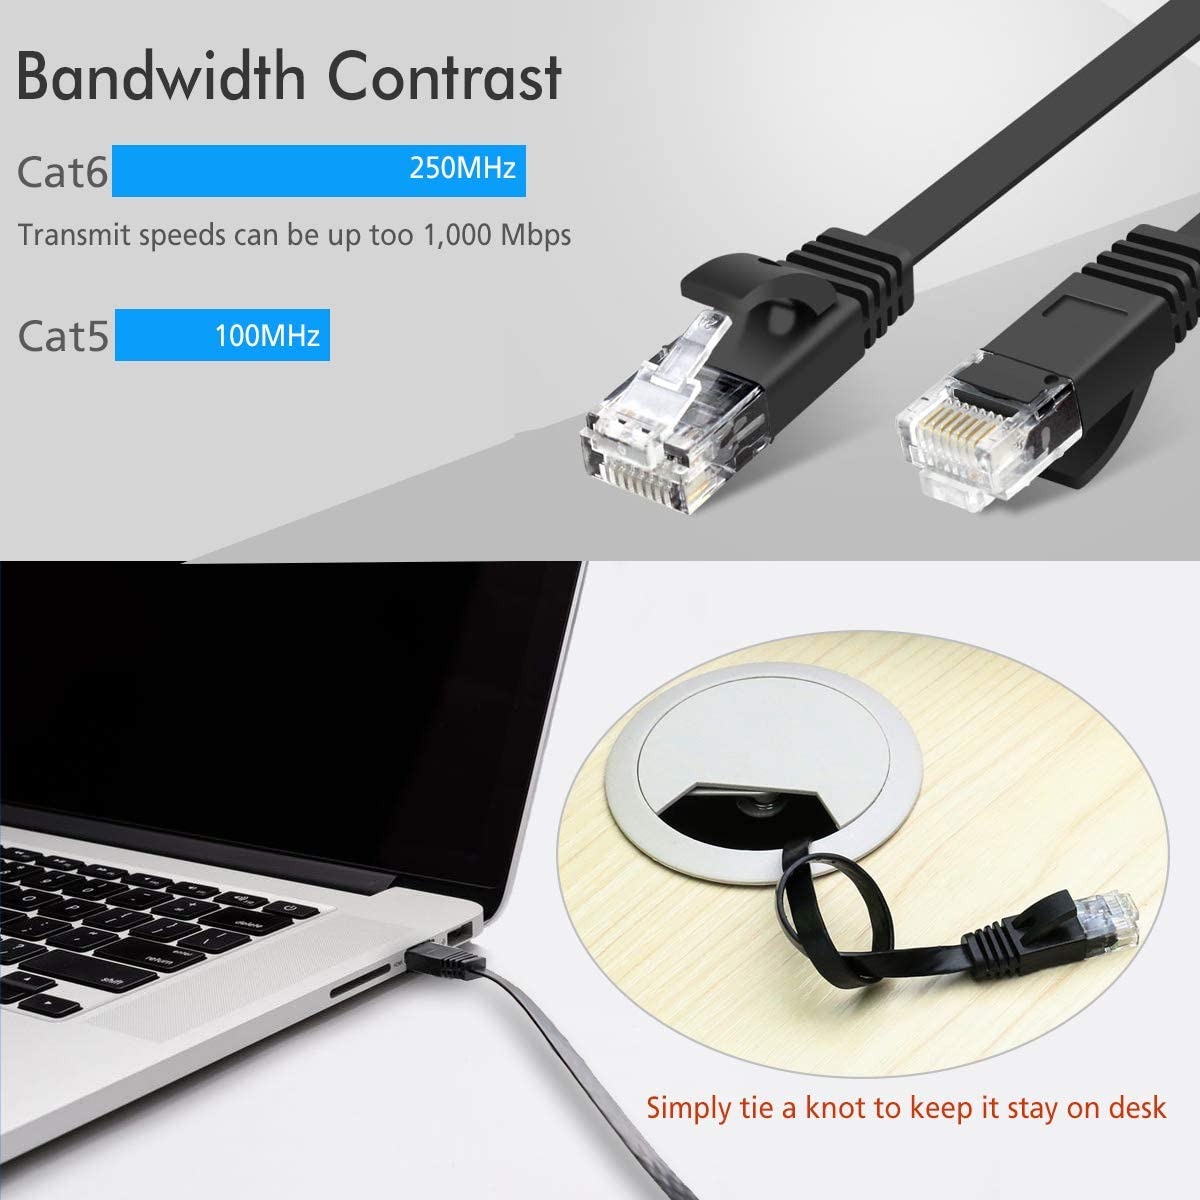 15FT USB 2.0 A to B Printer Scanner Cord for HP PhotoSmart C6150 C6180 C6240 C6250 C6280 C6380 C7250 C7280 C8150 C8180 C8183 C8188 D5145 D5155 D5160 D5345 100 Pack Harper Grove Printer Cable